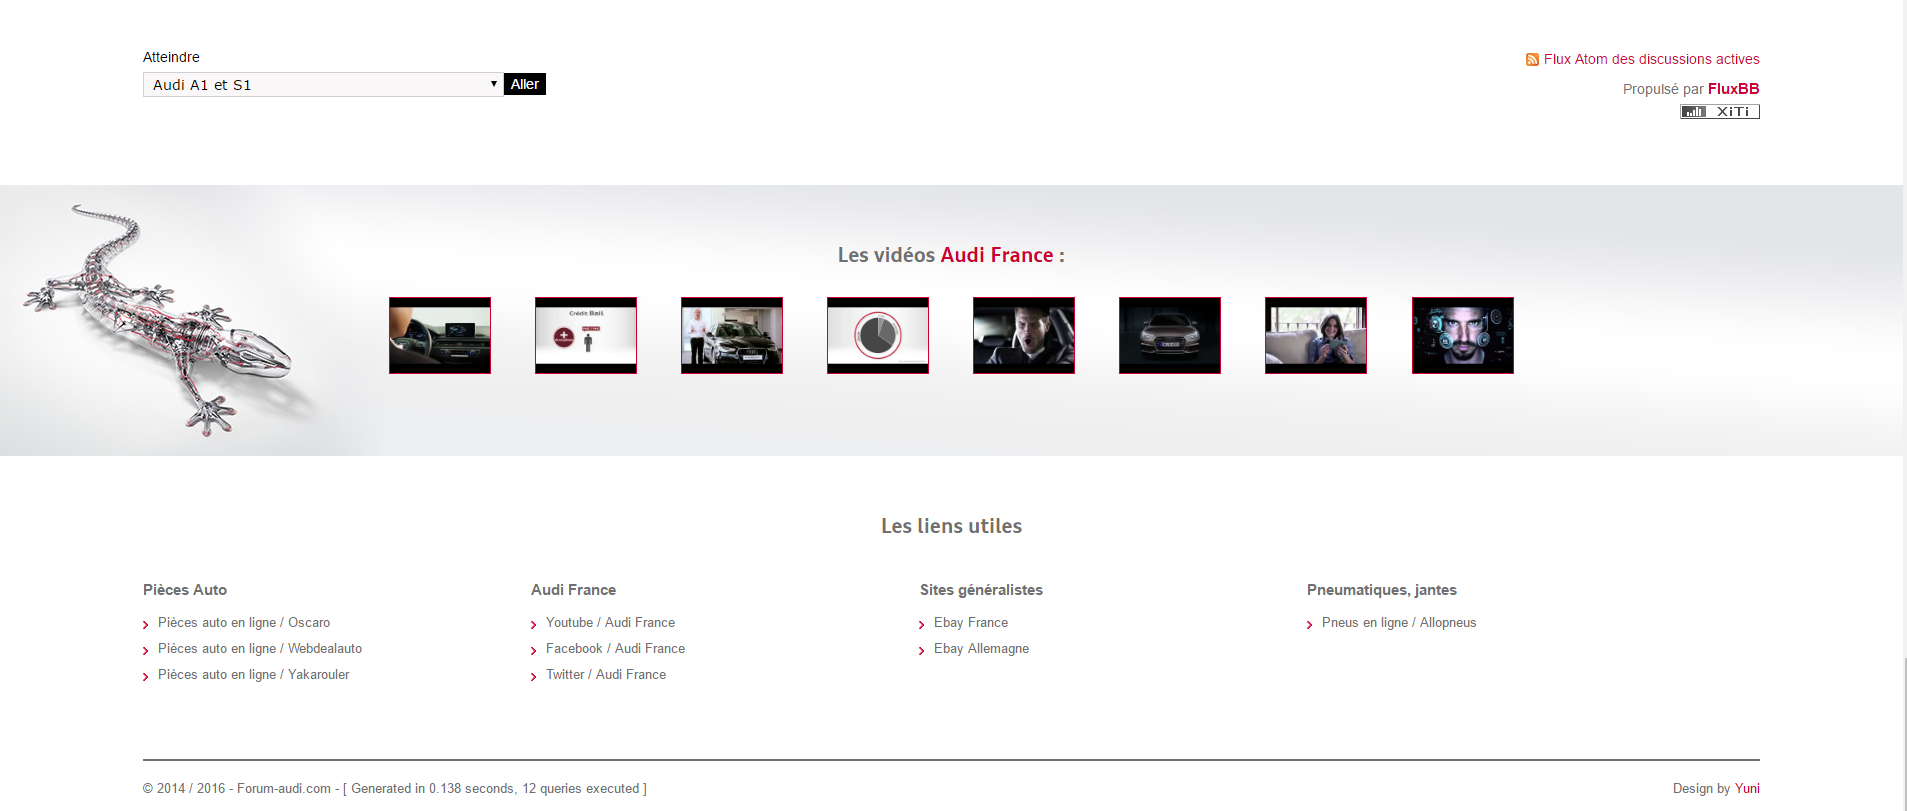 videowall-footer-forum-audi-une-seule-chaine.png